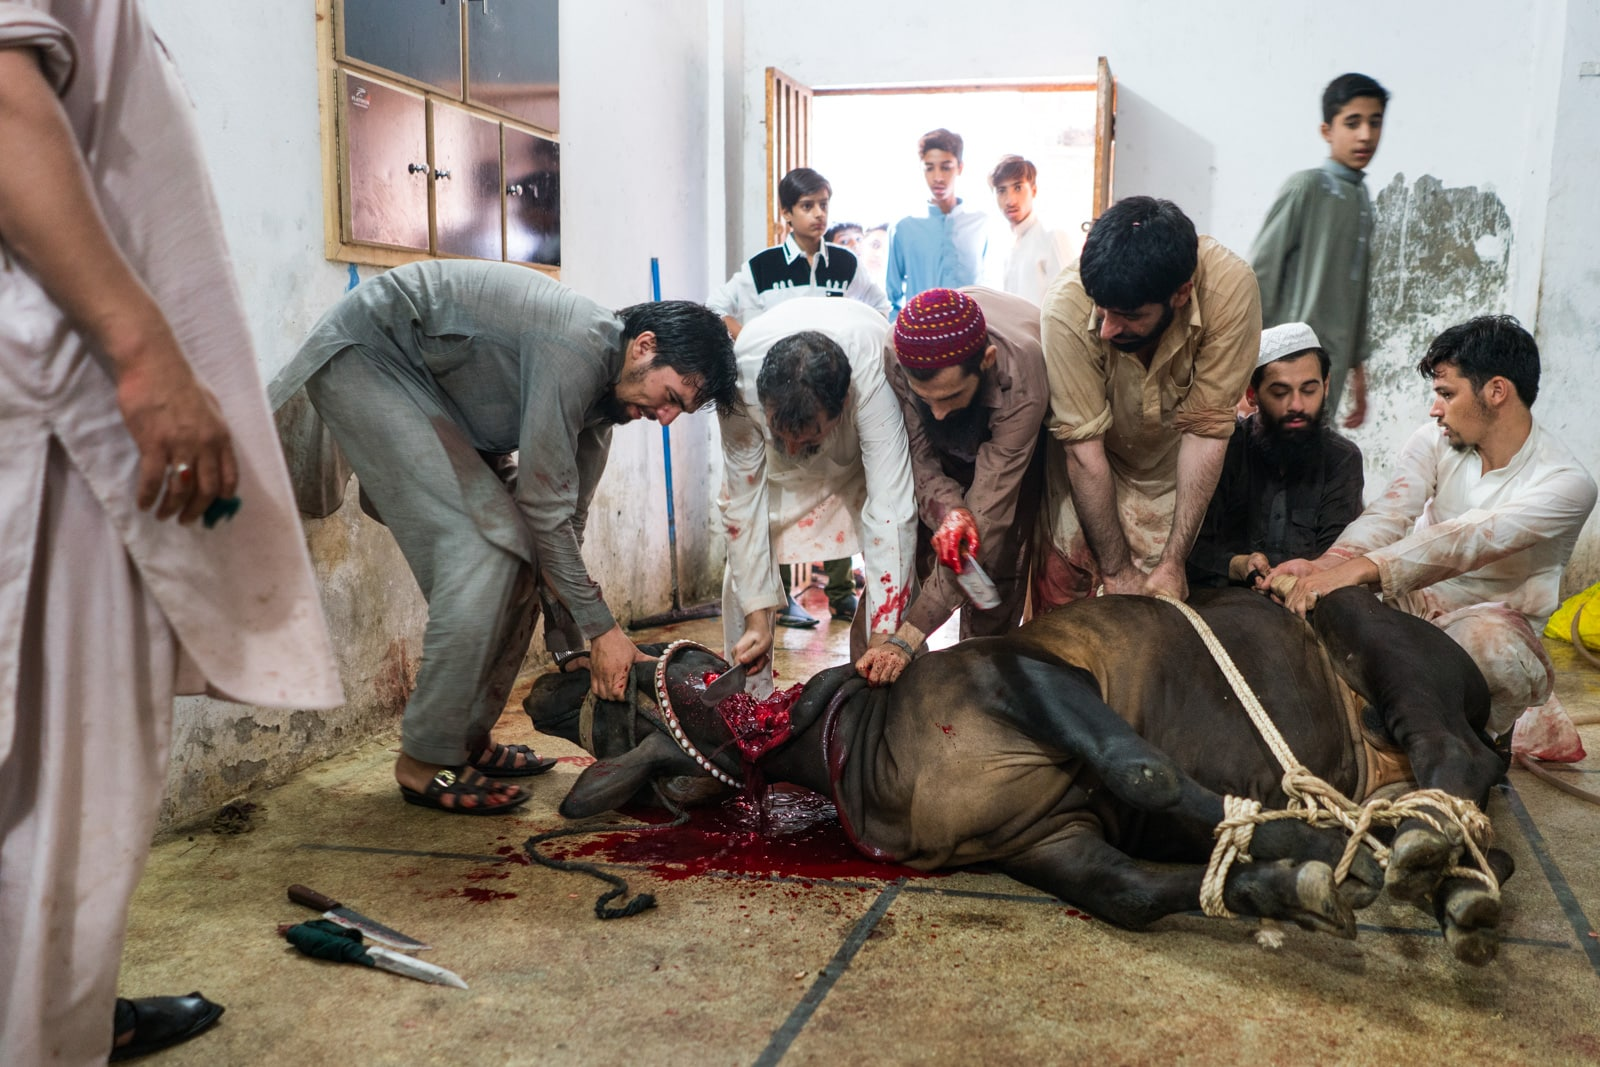 Celebrating Eid al-Adha in Lahore, Pakistan - Men sacrificing a cow for Eid al-Adha - Lost With Purpose travel blog